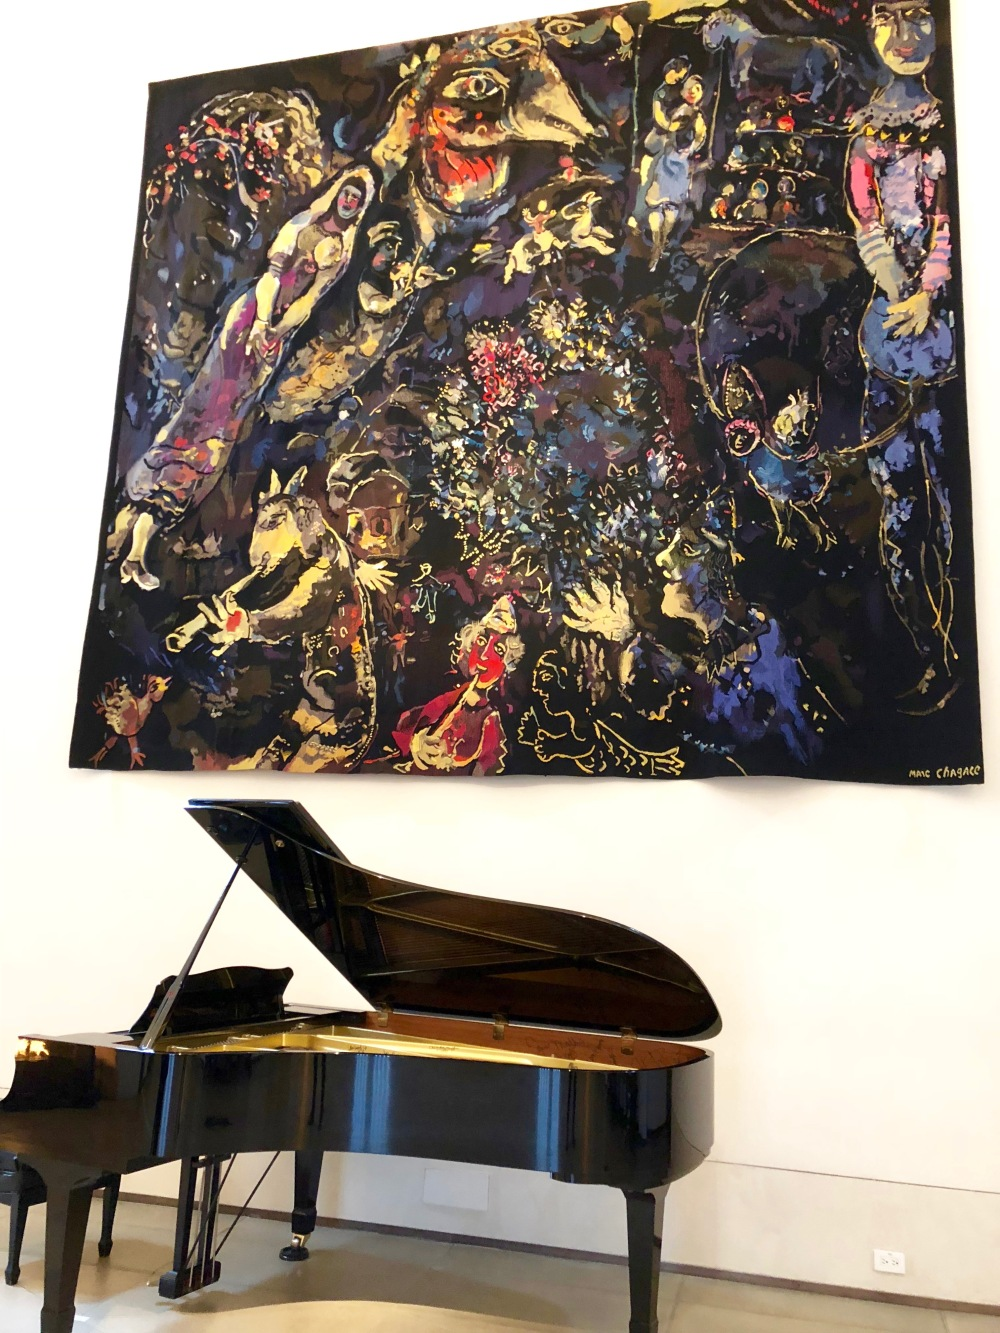 Chagall and David Foster piano